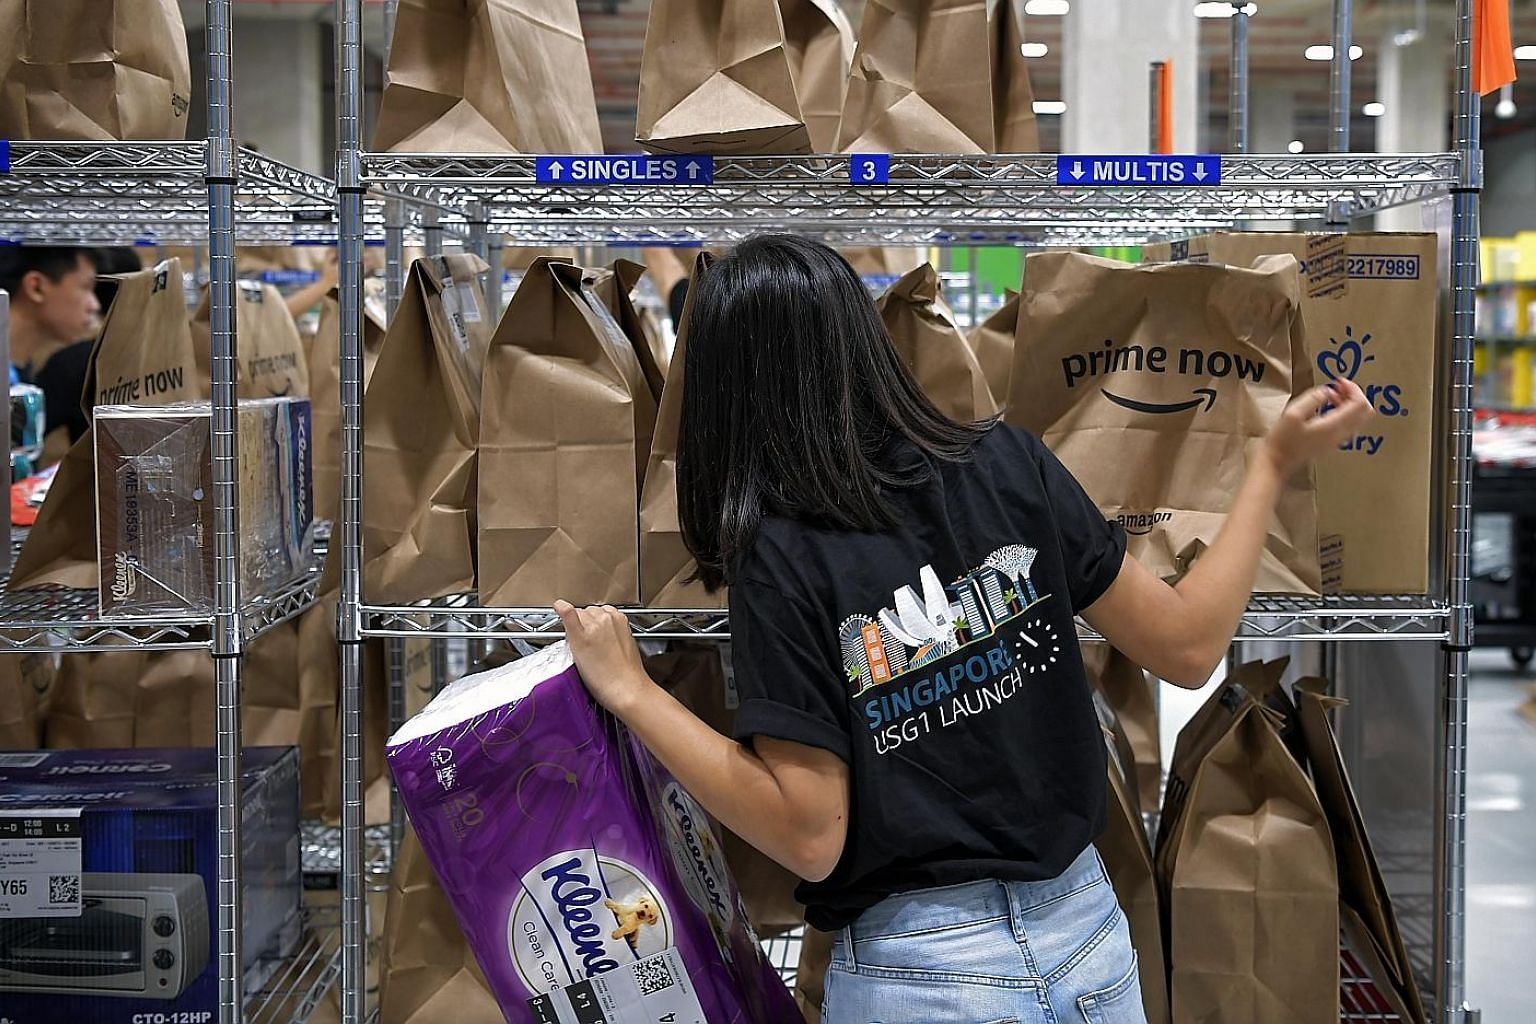 An Amazon employee packing orders. Some consumers could not place orders yesterday due to overwhelming demand.